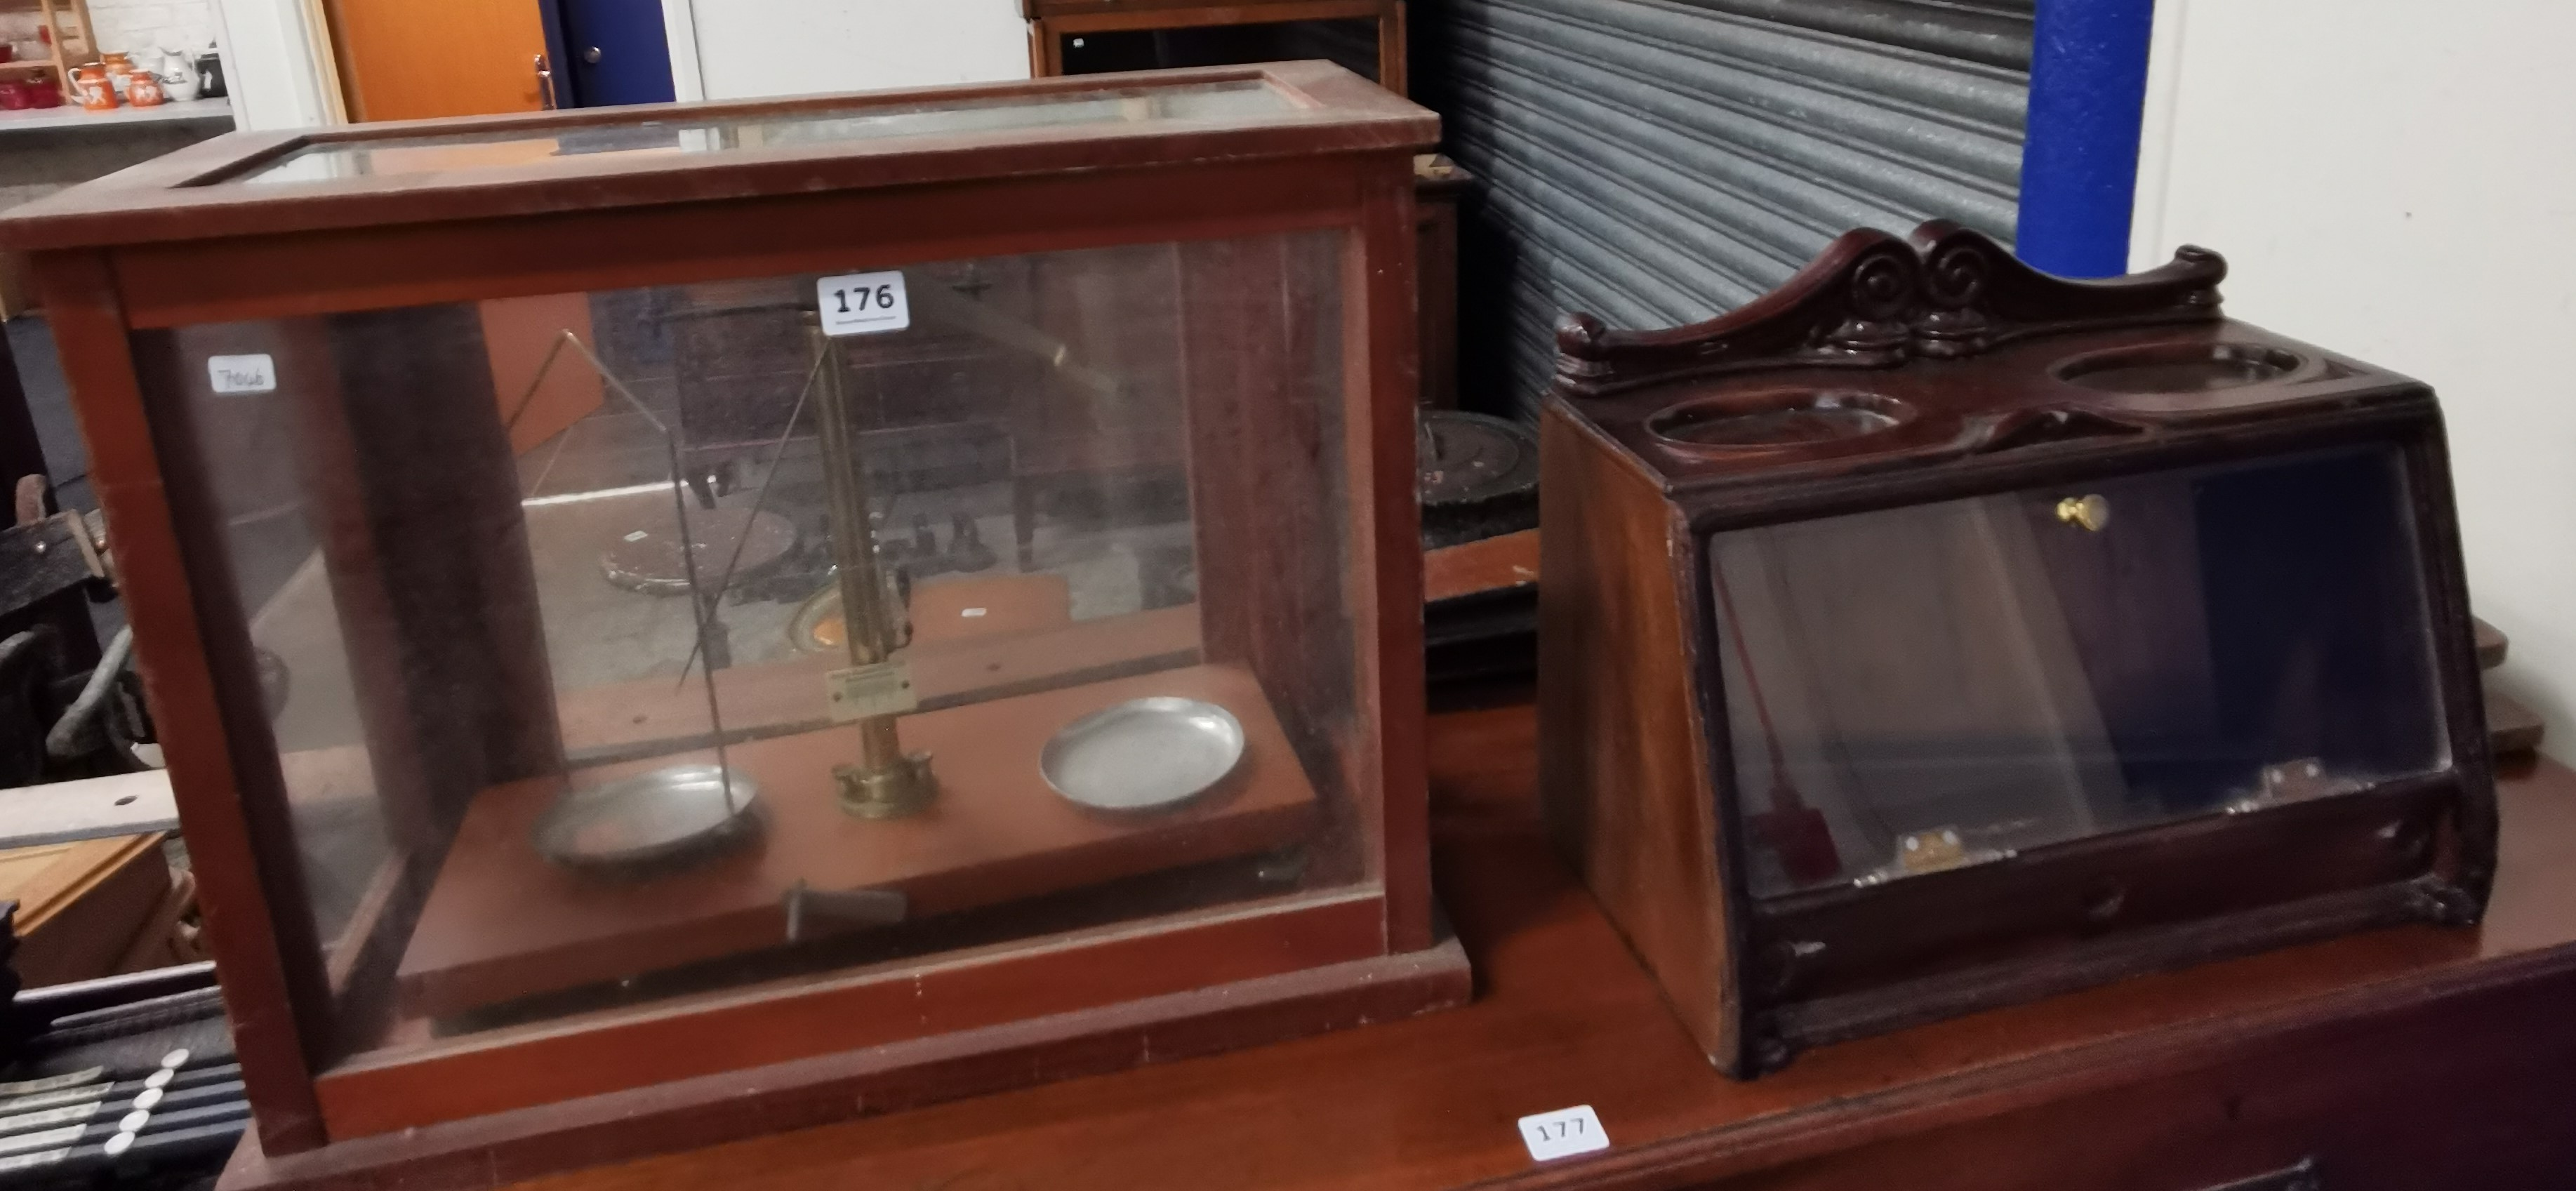 Lot 176 - BALANCE SCALES, T SQUARES AND SMALL DISPLAY CASE